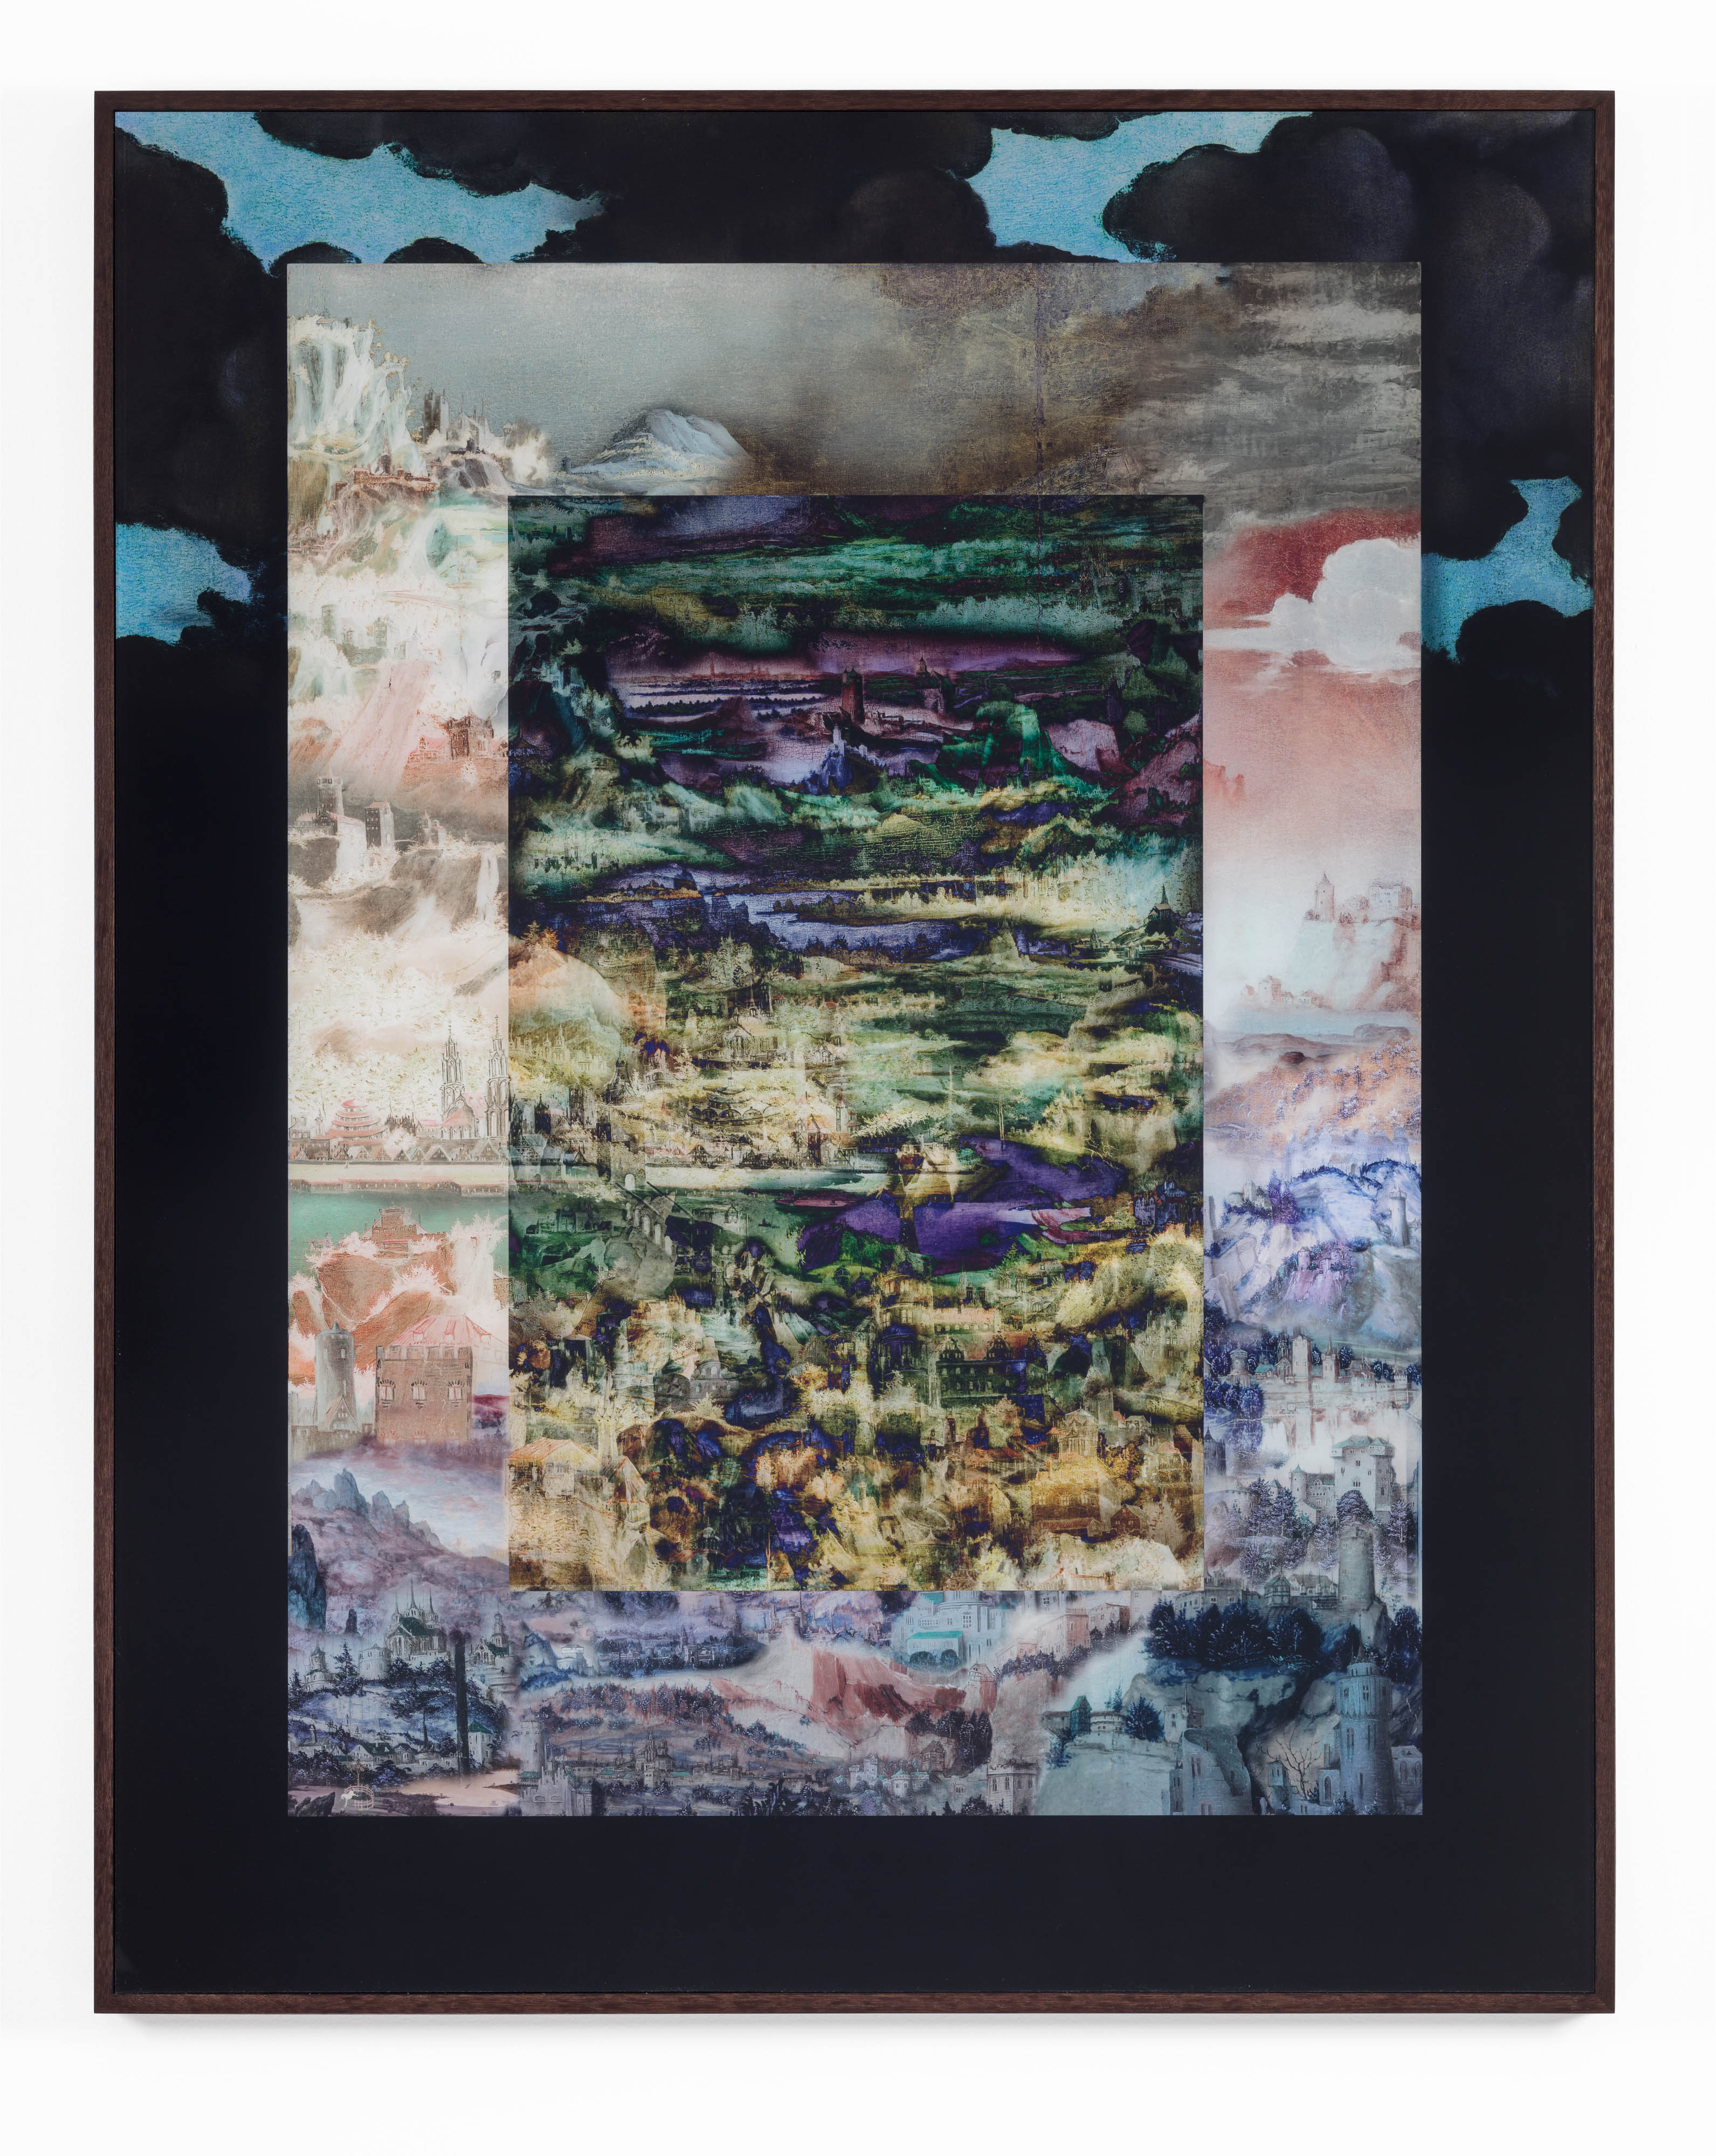 David Molander, Anagram, 2017, Diasec mounted inkjet print, acrylic glass, oak frame, 143 x 113 cm, edition of 5